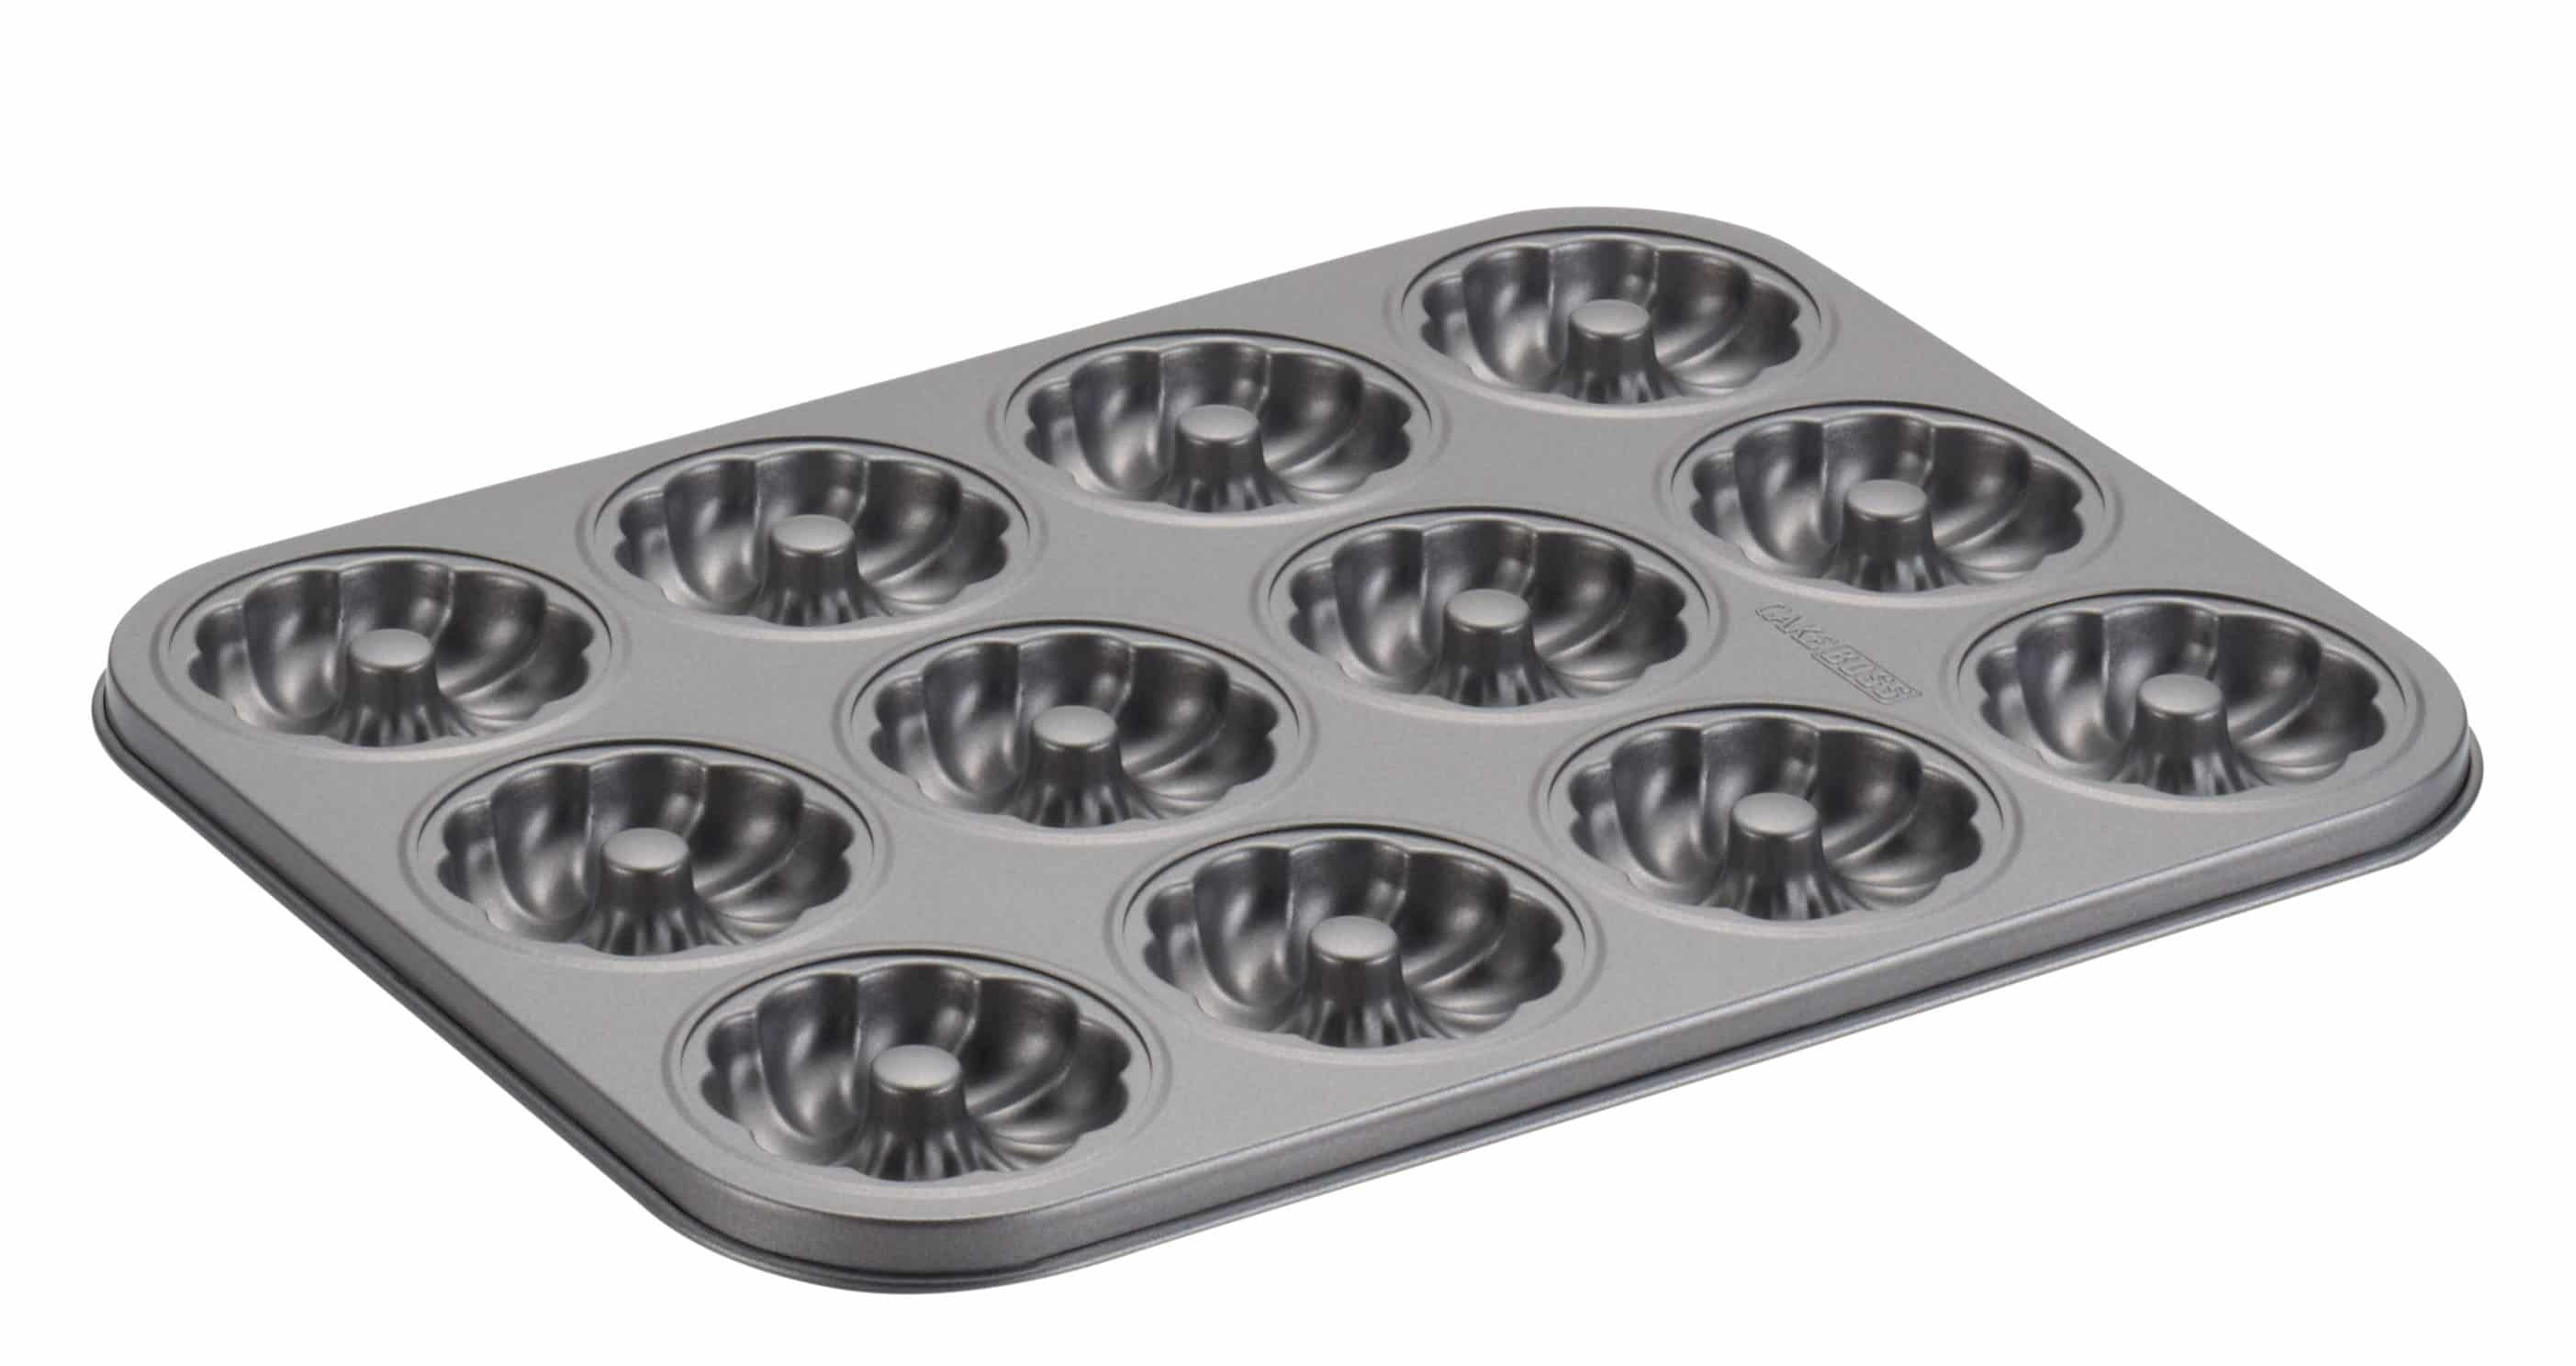 53601_12-cup-molded-cookie-pan-round-braided-1